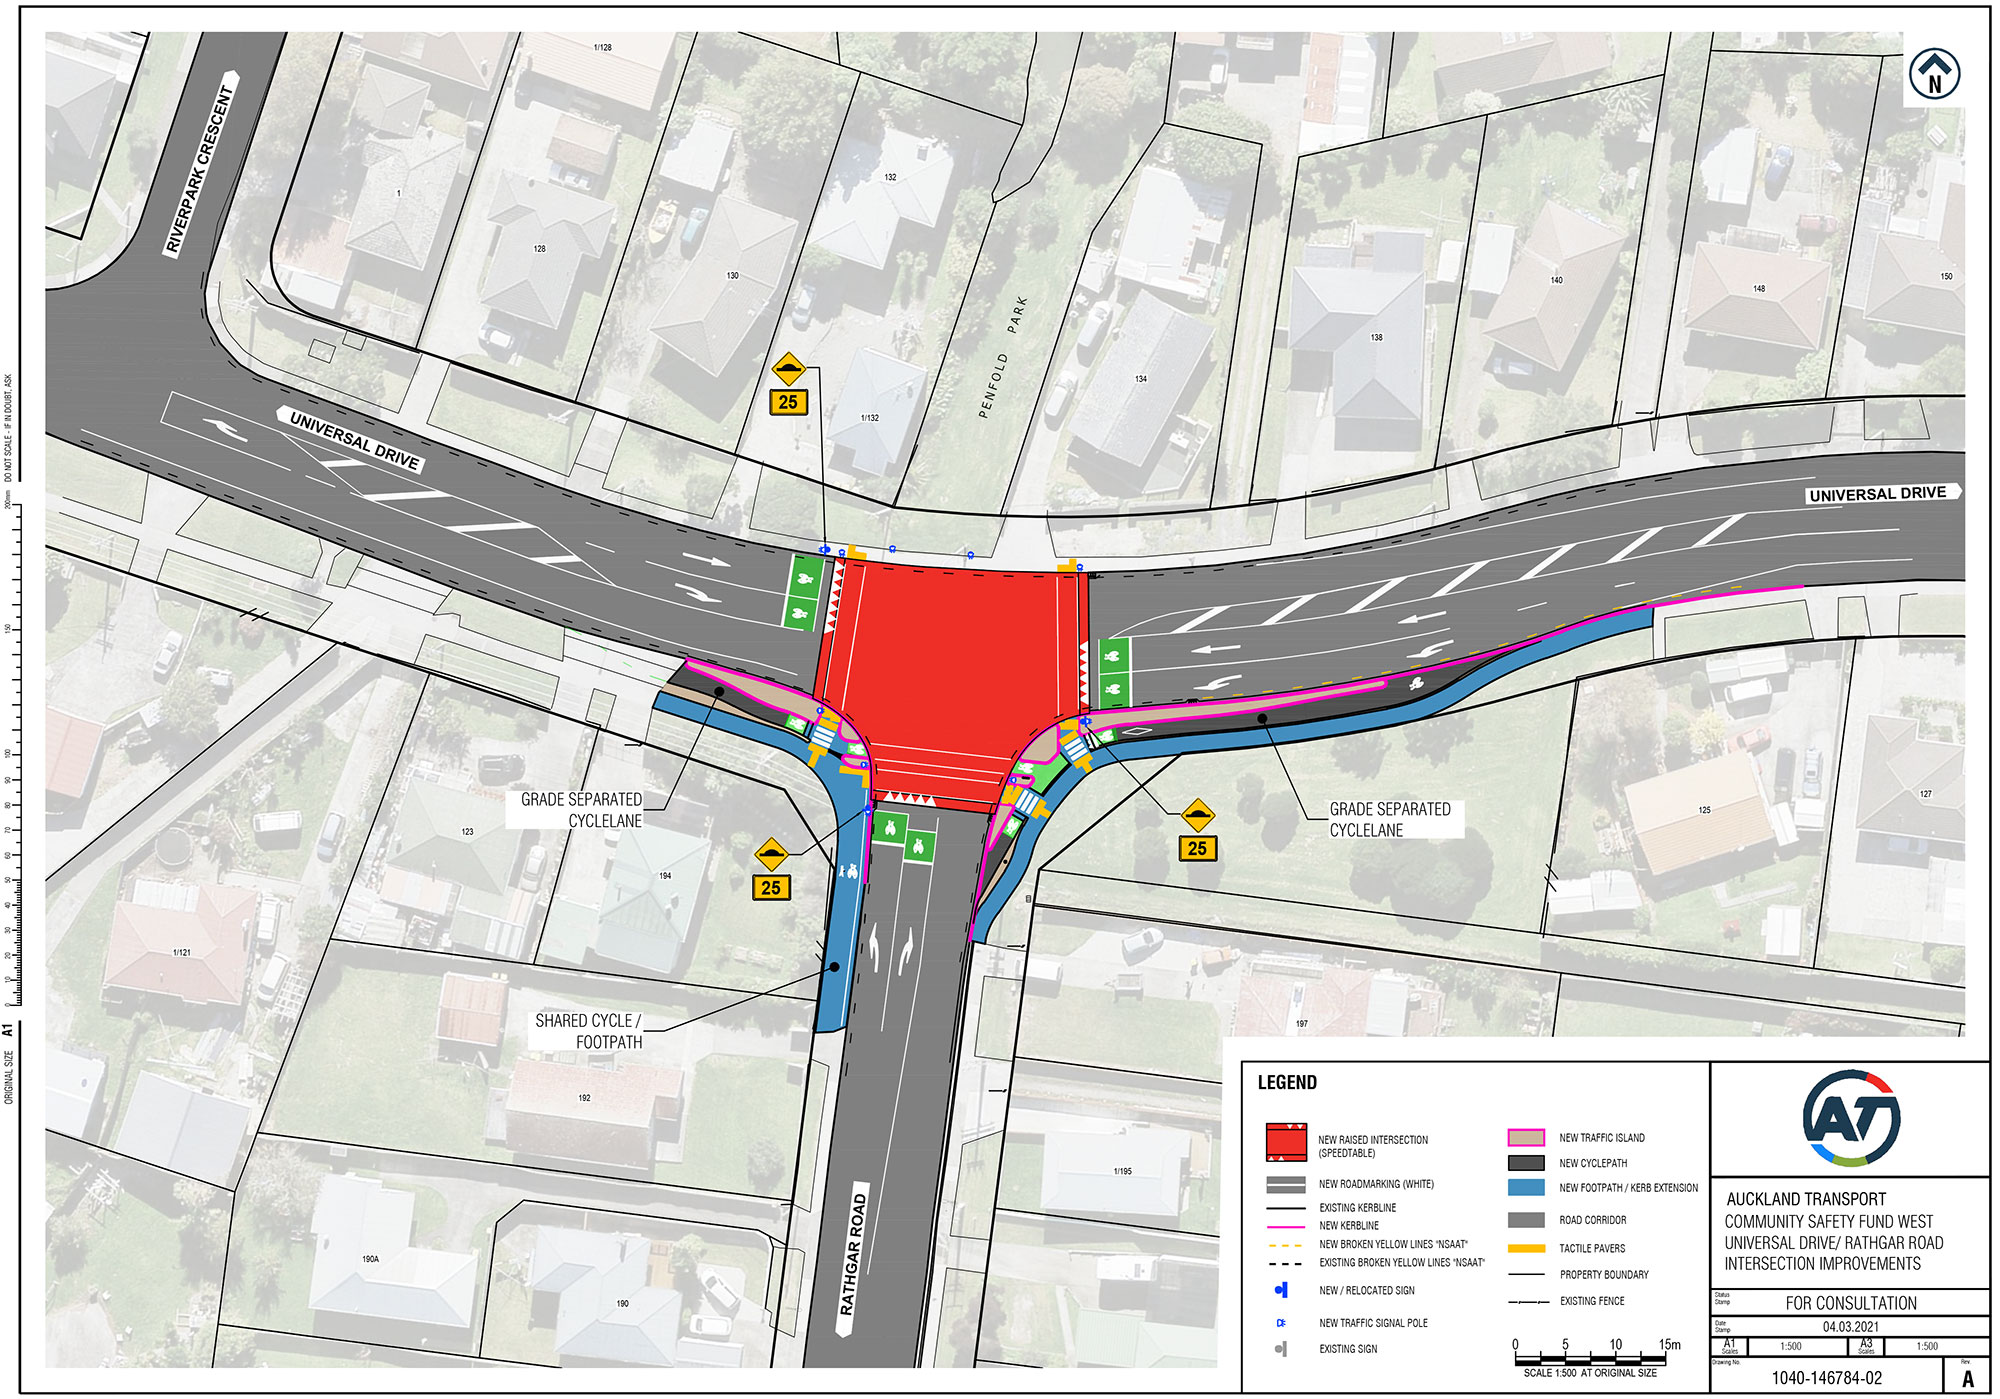 Technical plan for Universal Drive/Rathgar Rd